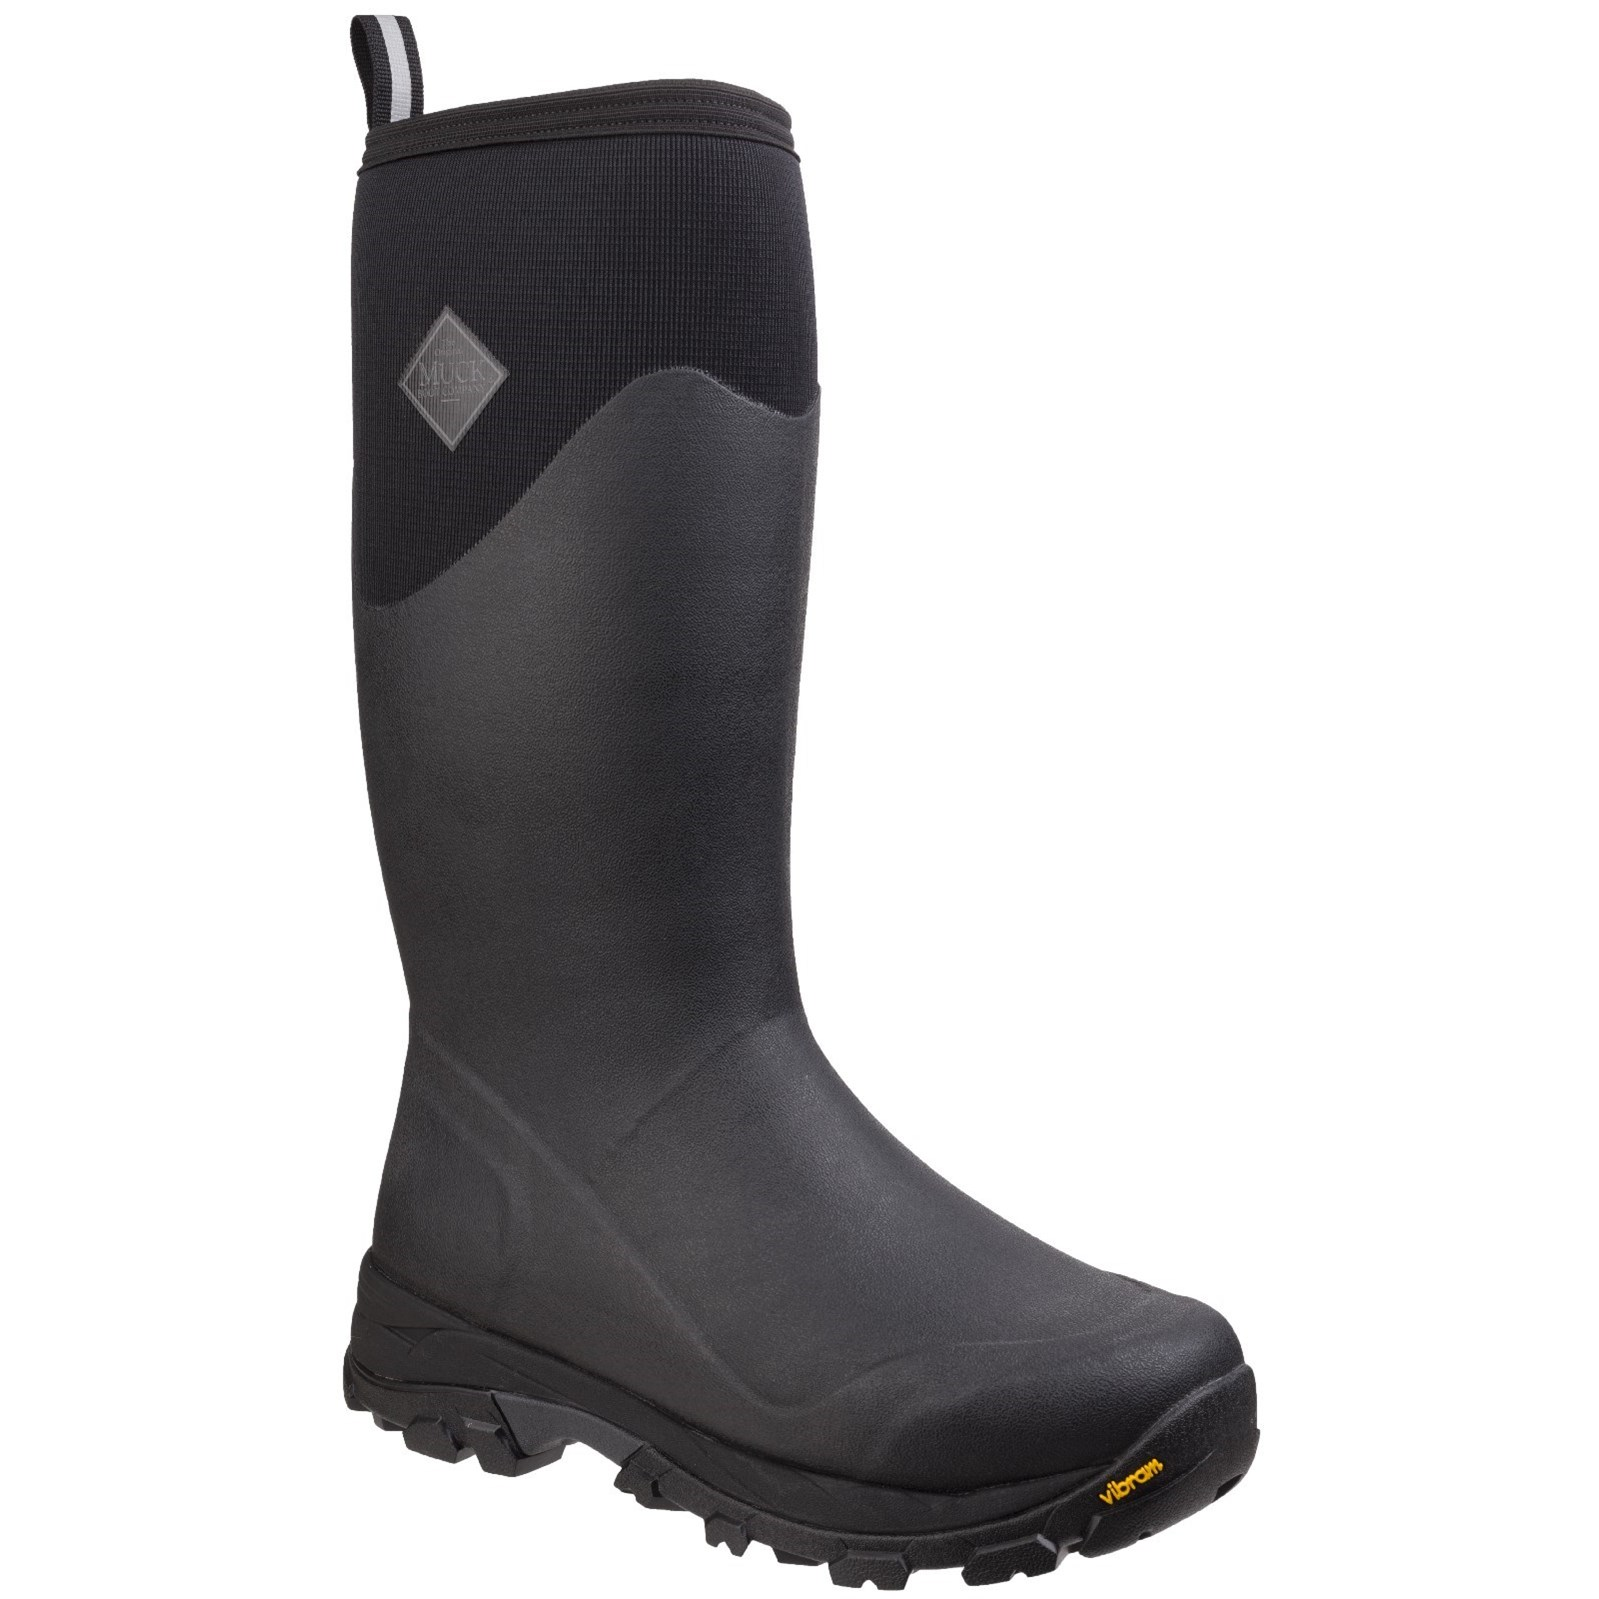 Muck Boots Boots Muck Mens Arctic Ice Tall Extreme Conditions Wellington Boots (FS4915) 36fd76